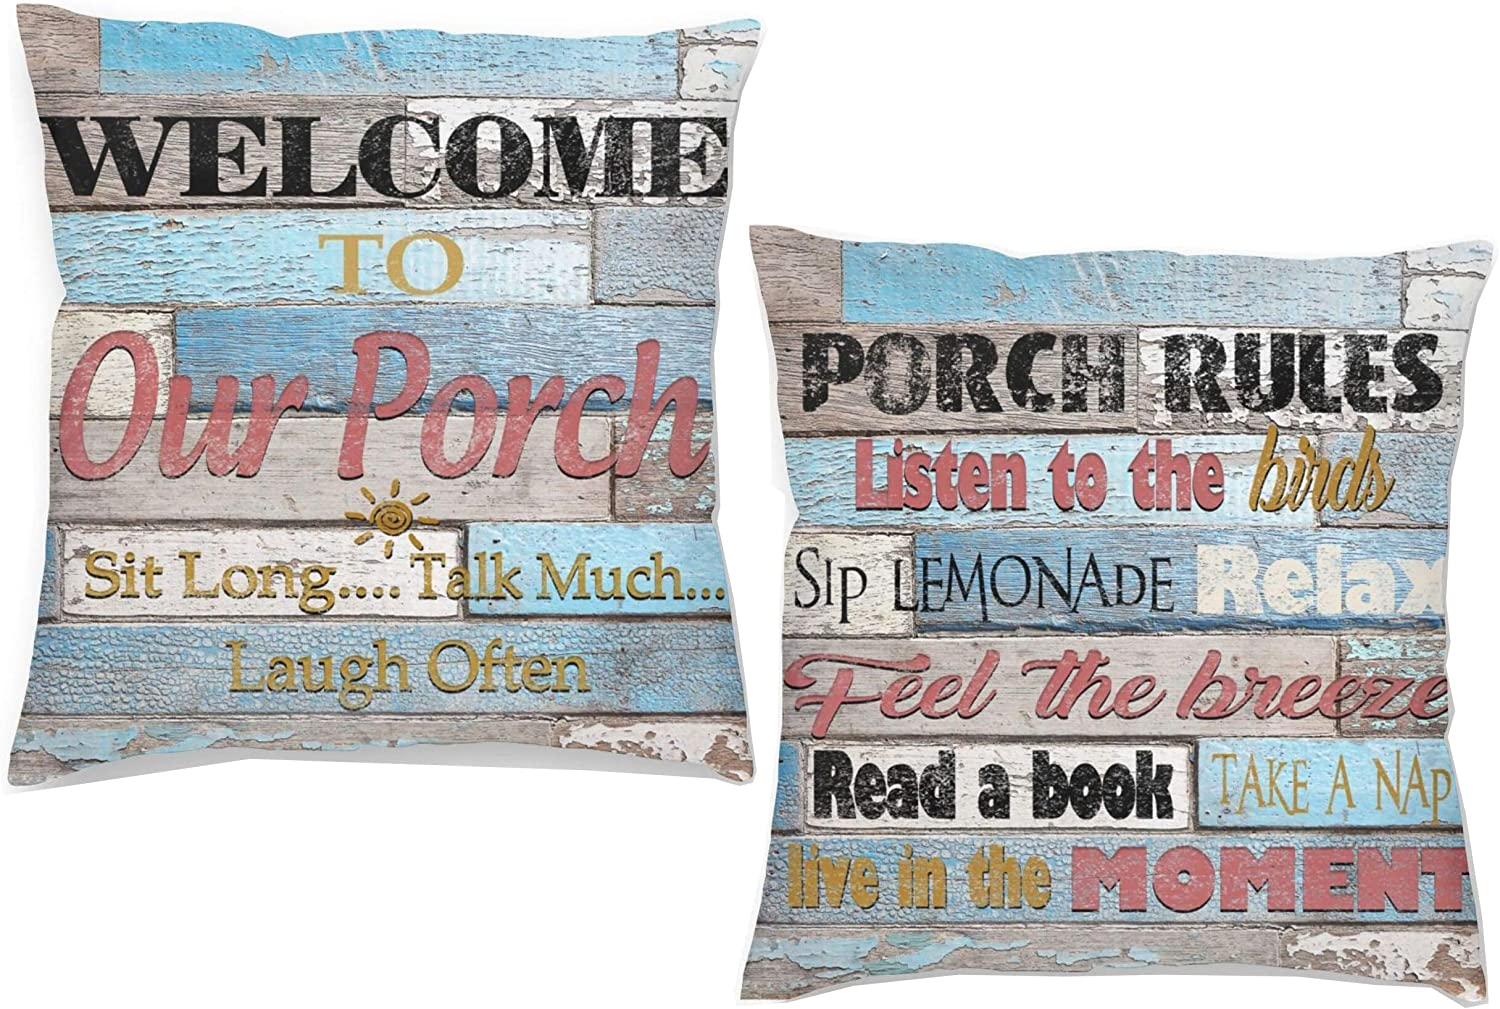 DZGlobal Welcome to Our Porch Pillow Covers Porch Rules Relax Sit Long Talk Much Wooden Pillowcase Home Farmhouse Decor Outdoor Pillowcases for Patio Furniture 18x18 Set of 2